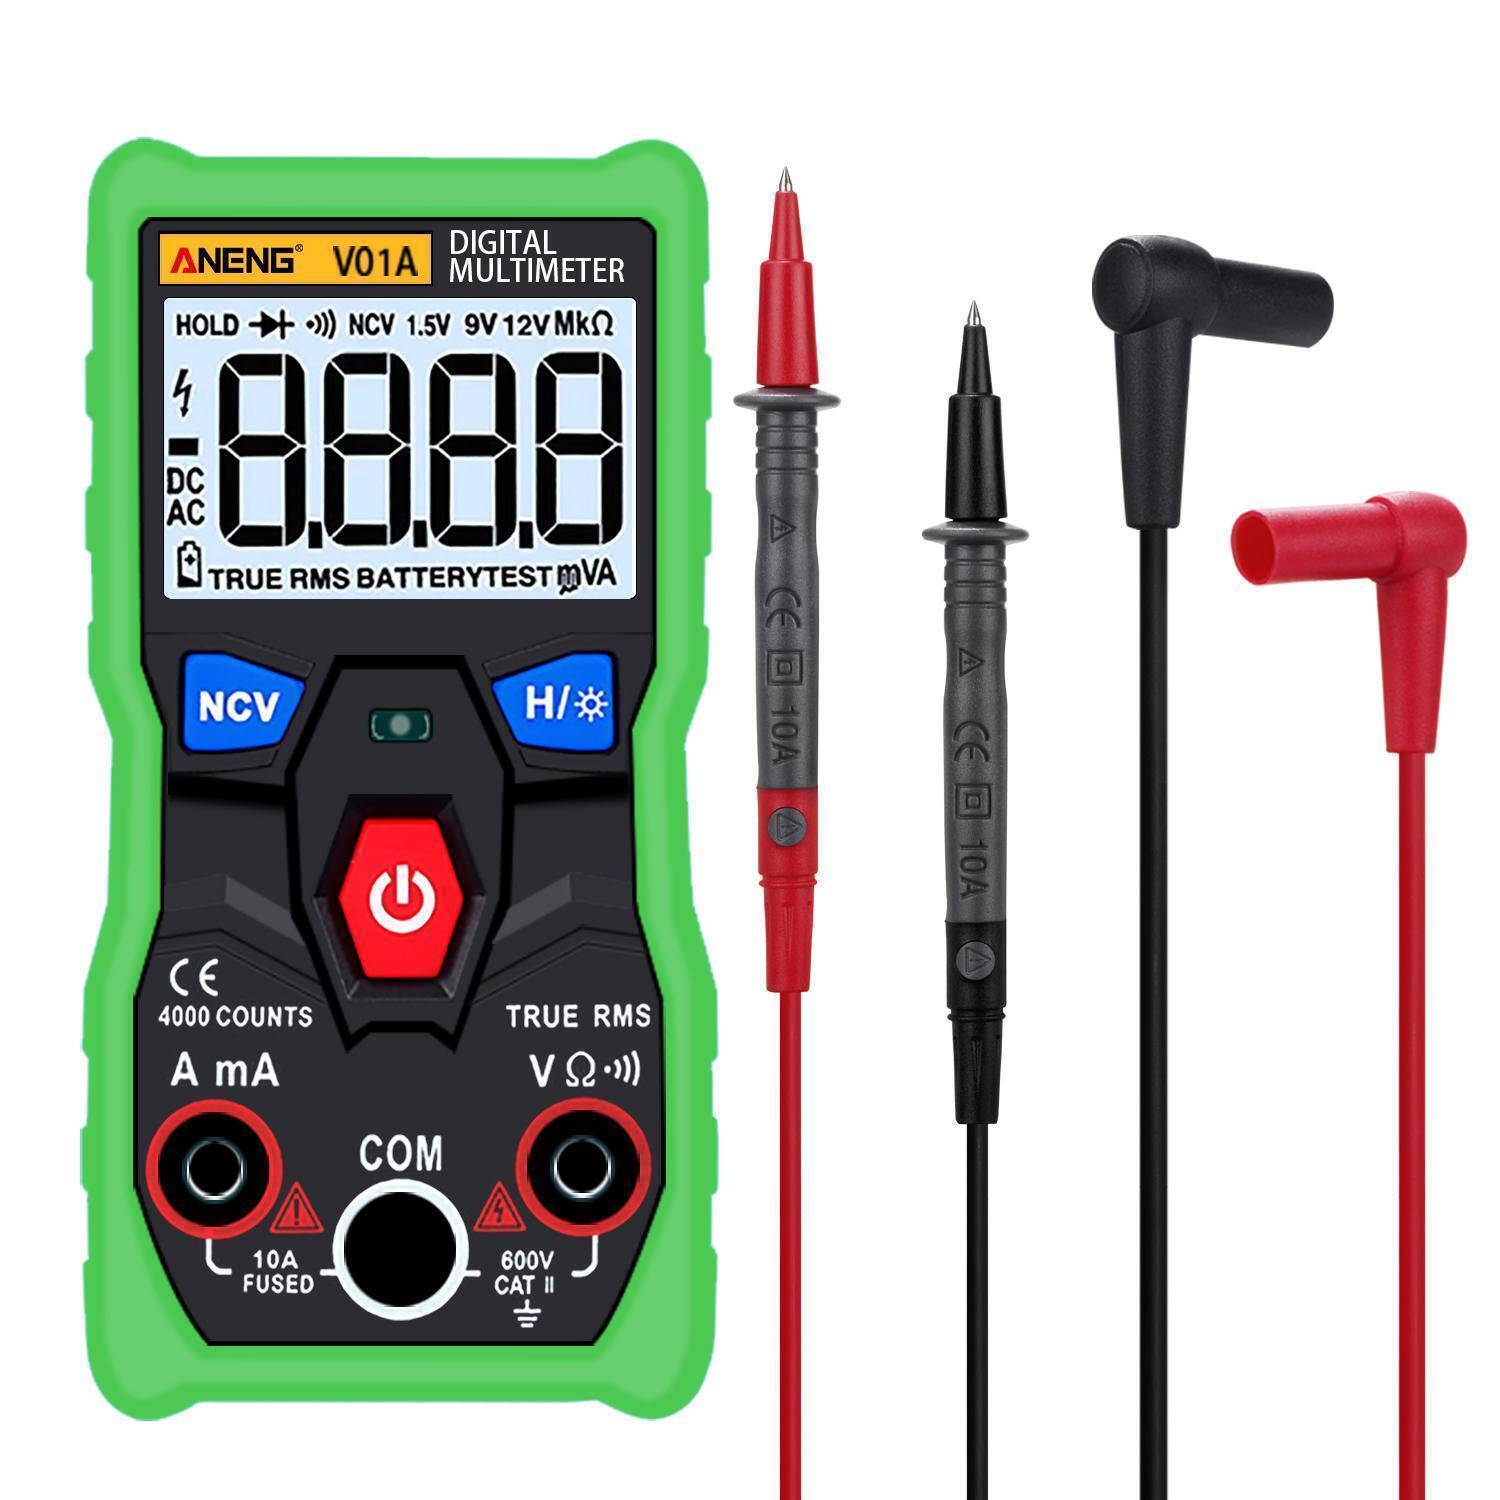 Digital True RMS Multimeter Tester Autoranging Automotriz Multimeter With NCV Data Hold LCD Backlight Flashlight Green Color